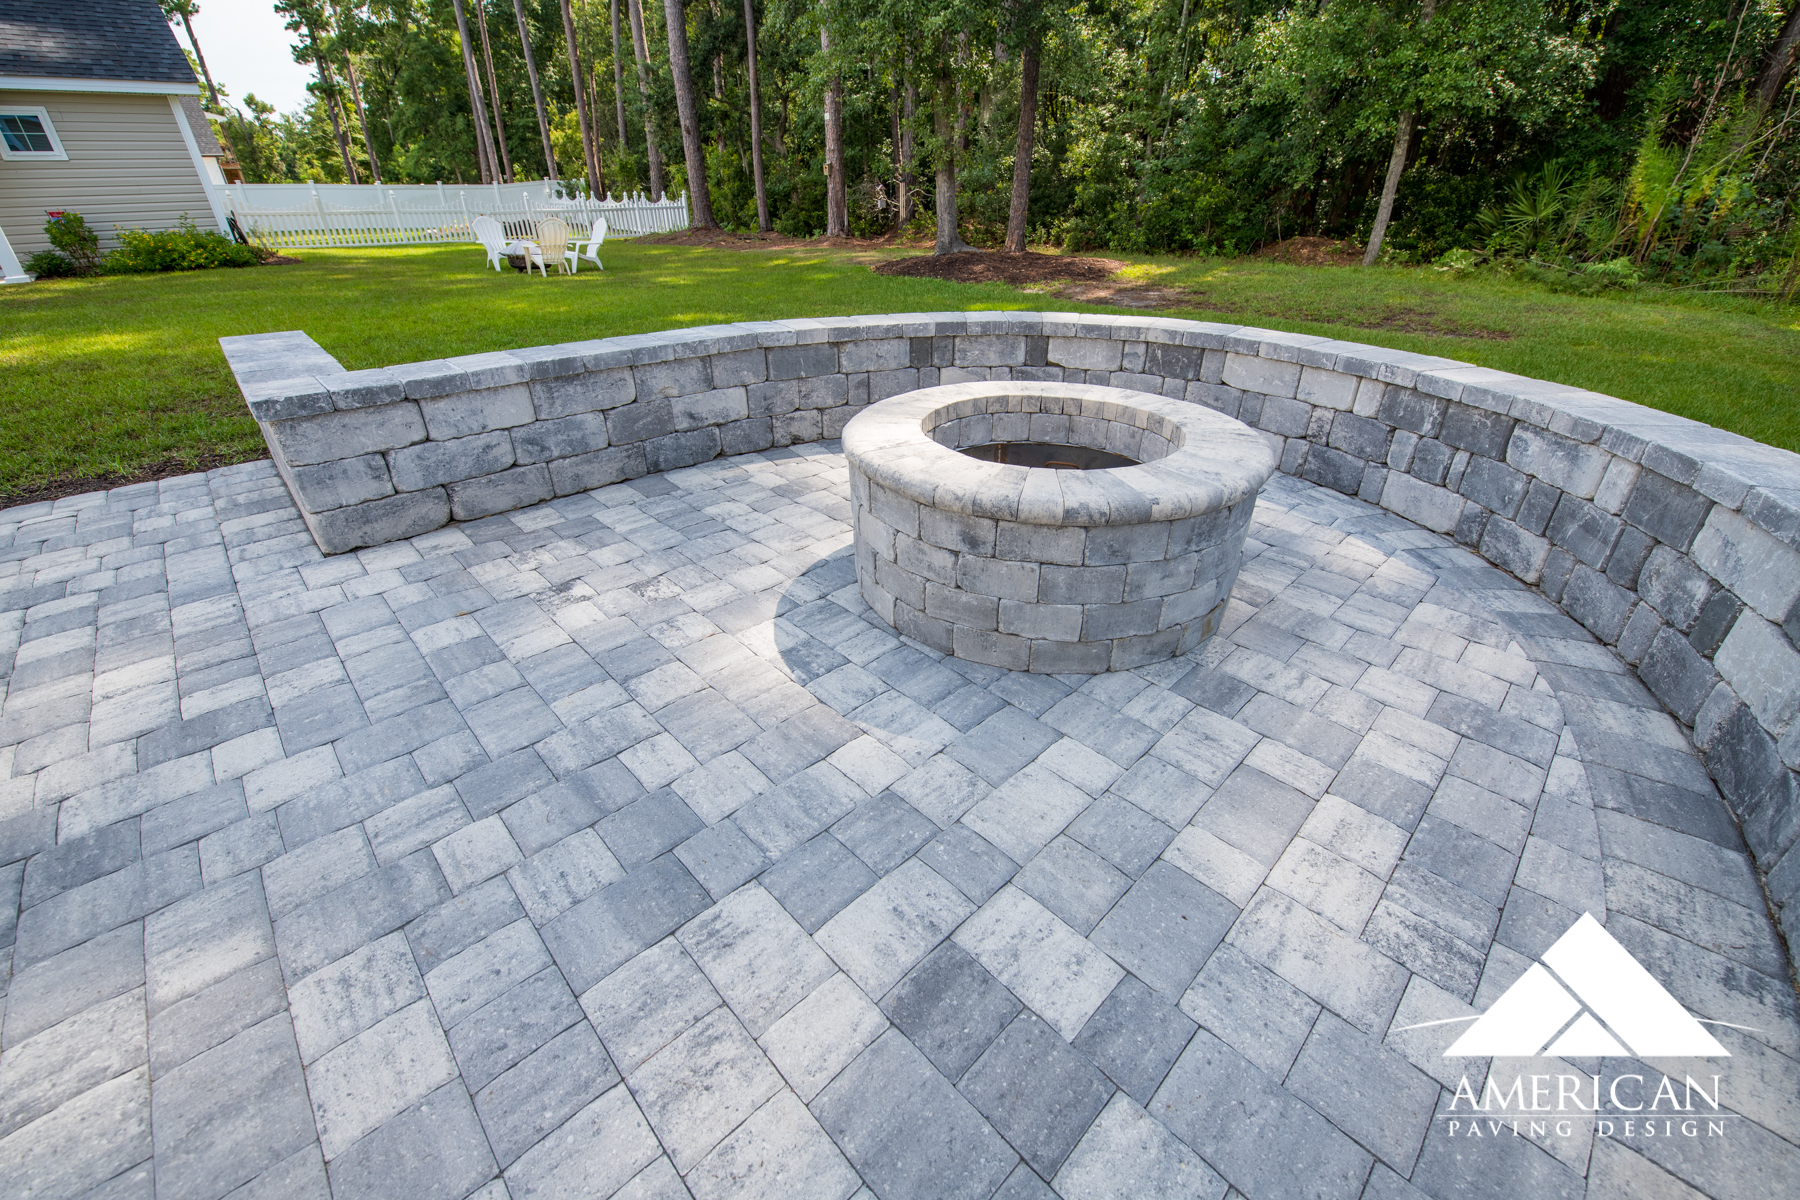 Paver patios  are the perfect way to spend afternoon and evenings with friends and family! Is your backyard ready for entertainment?